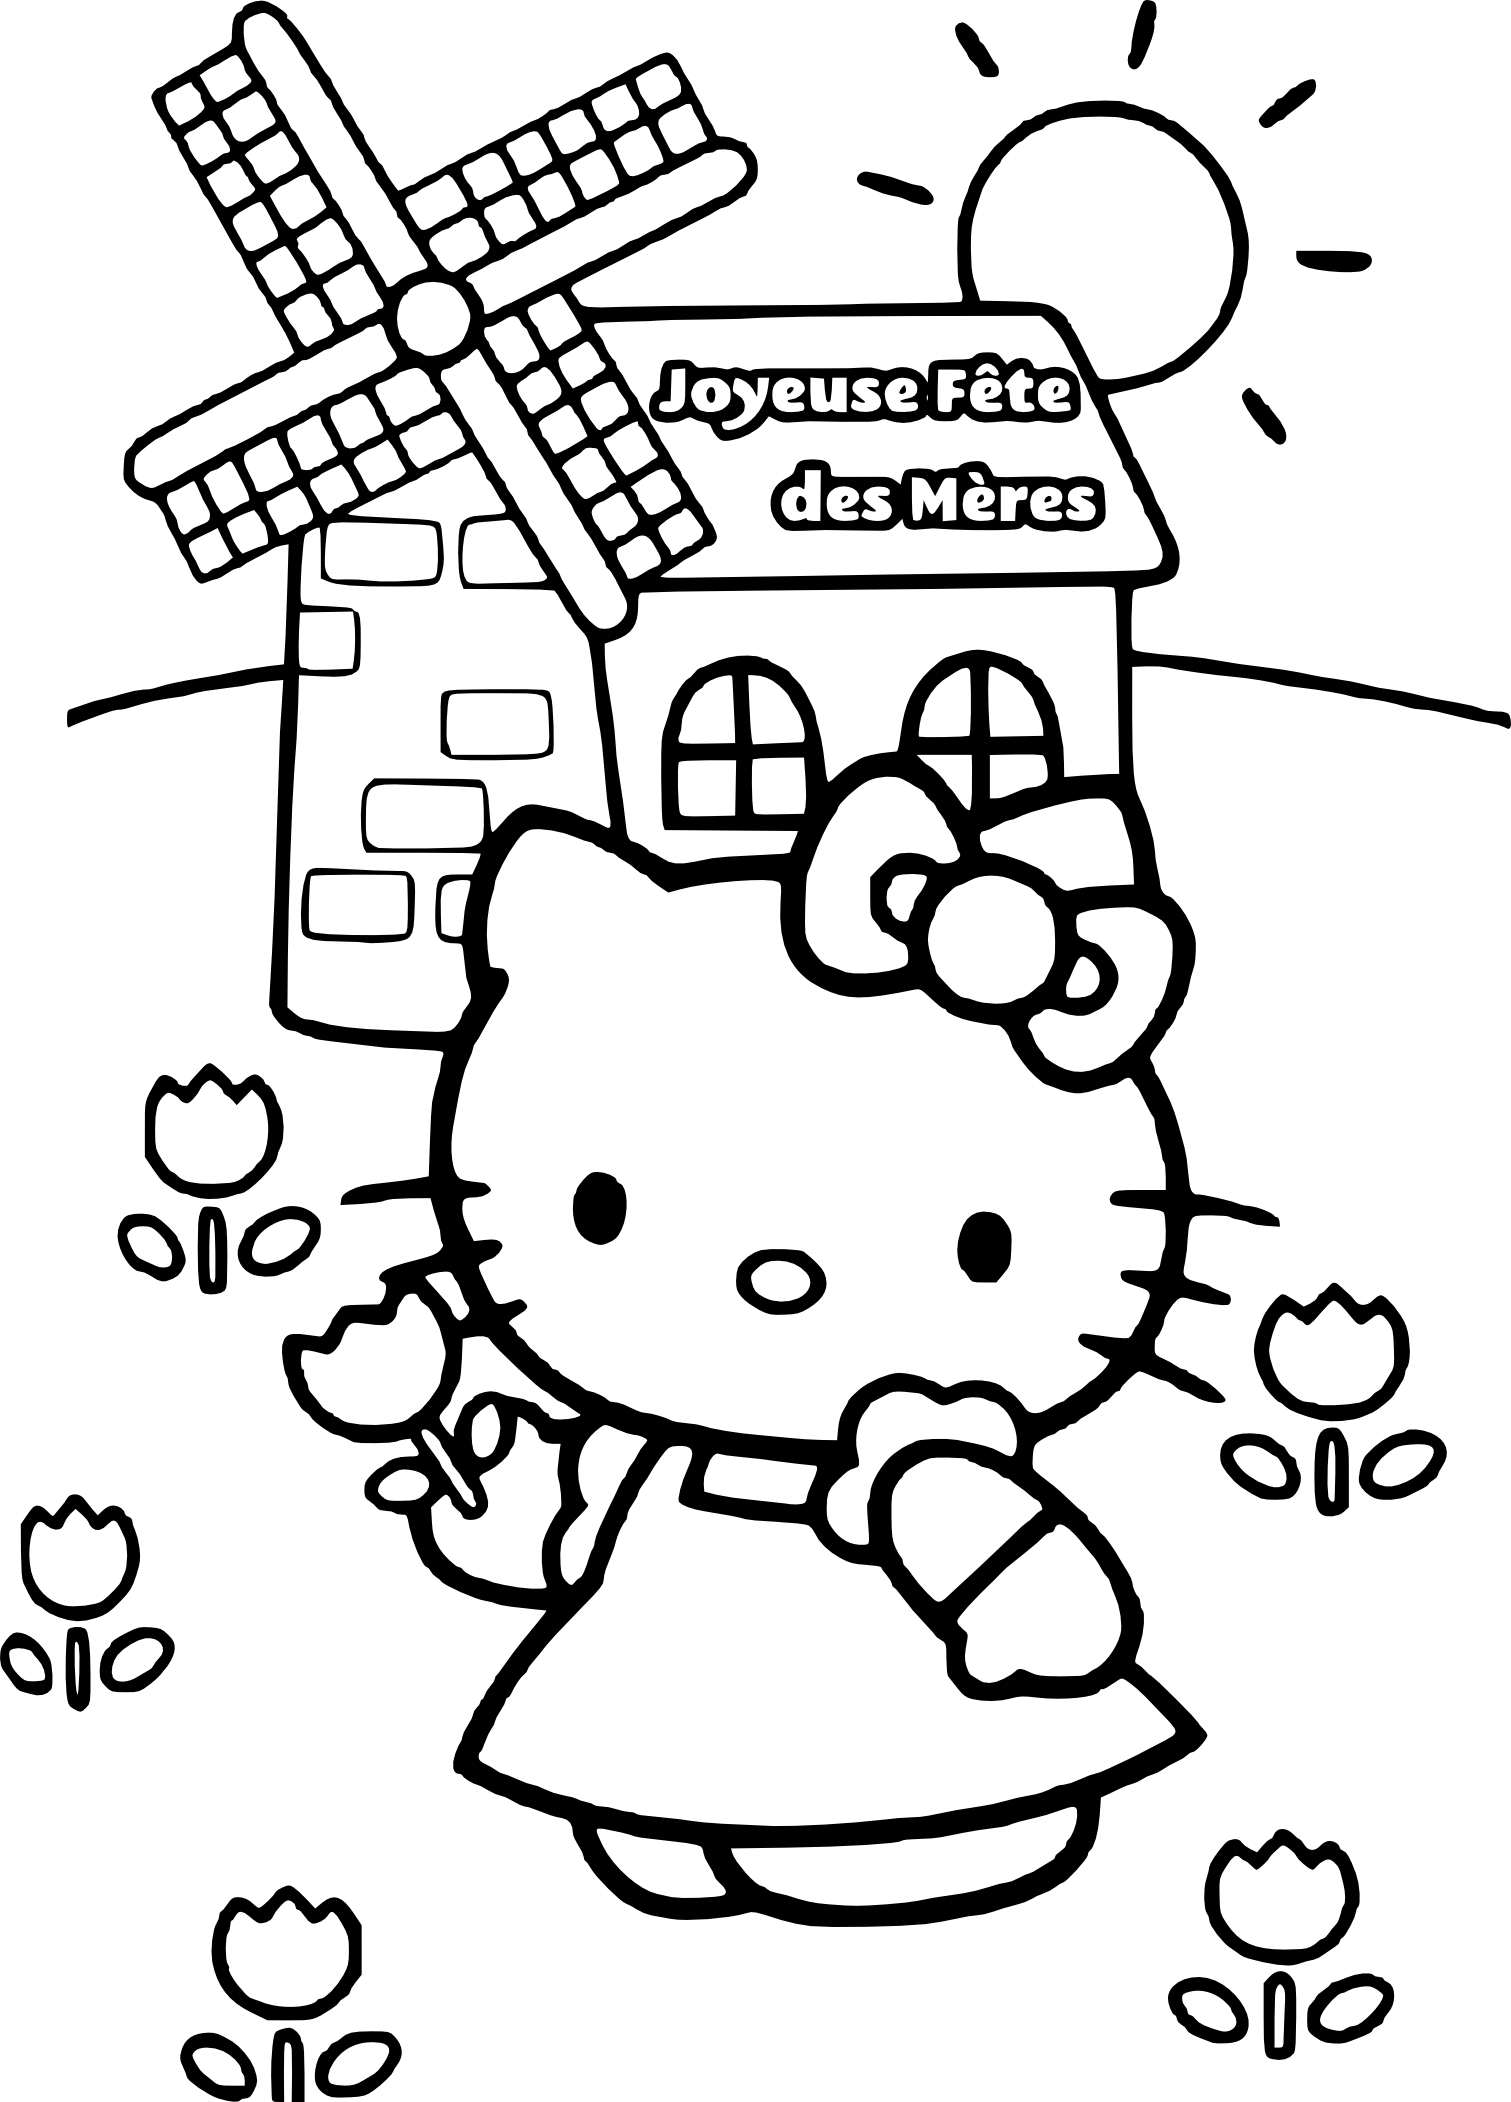 Coloriage Hello Kitty fete des meres